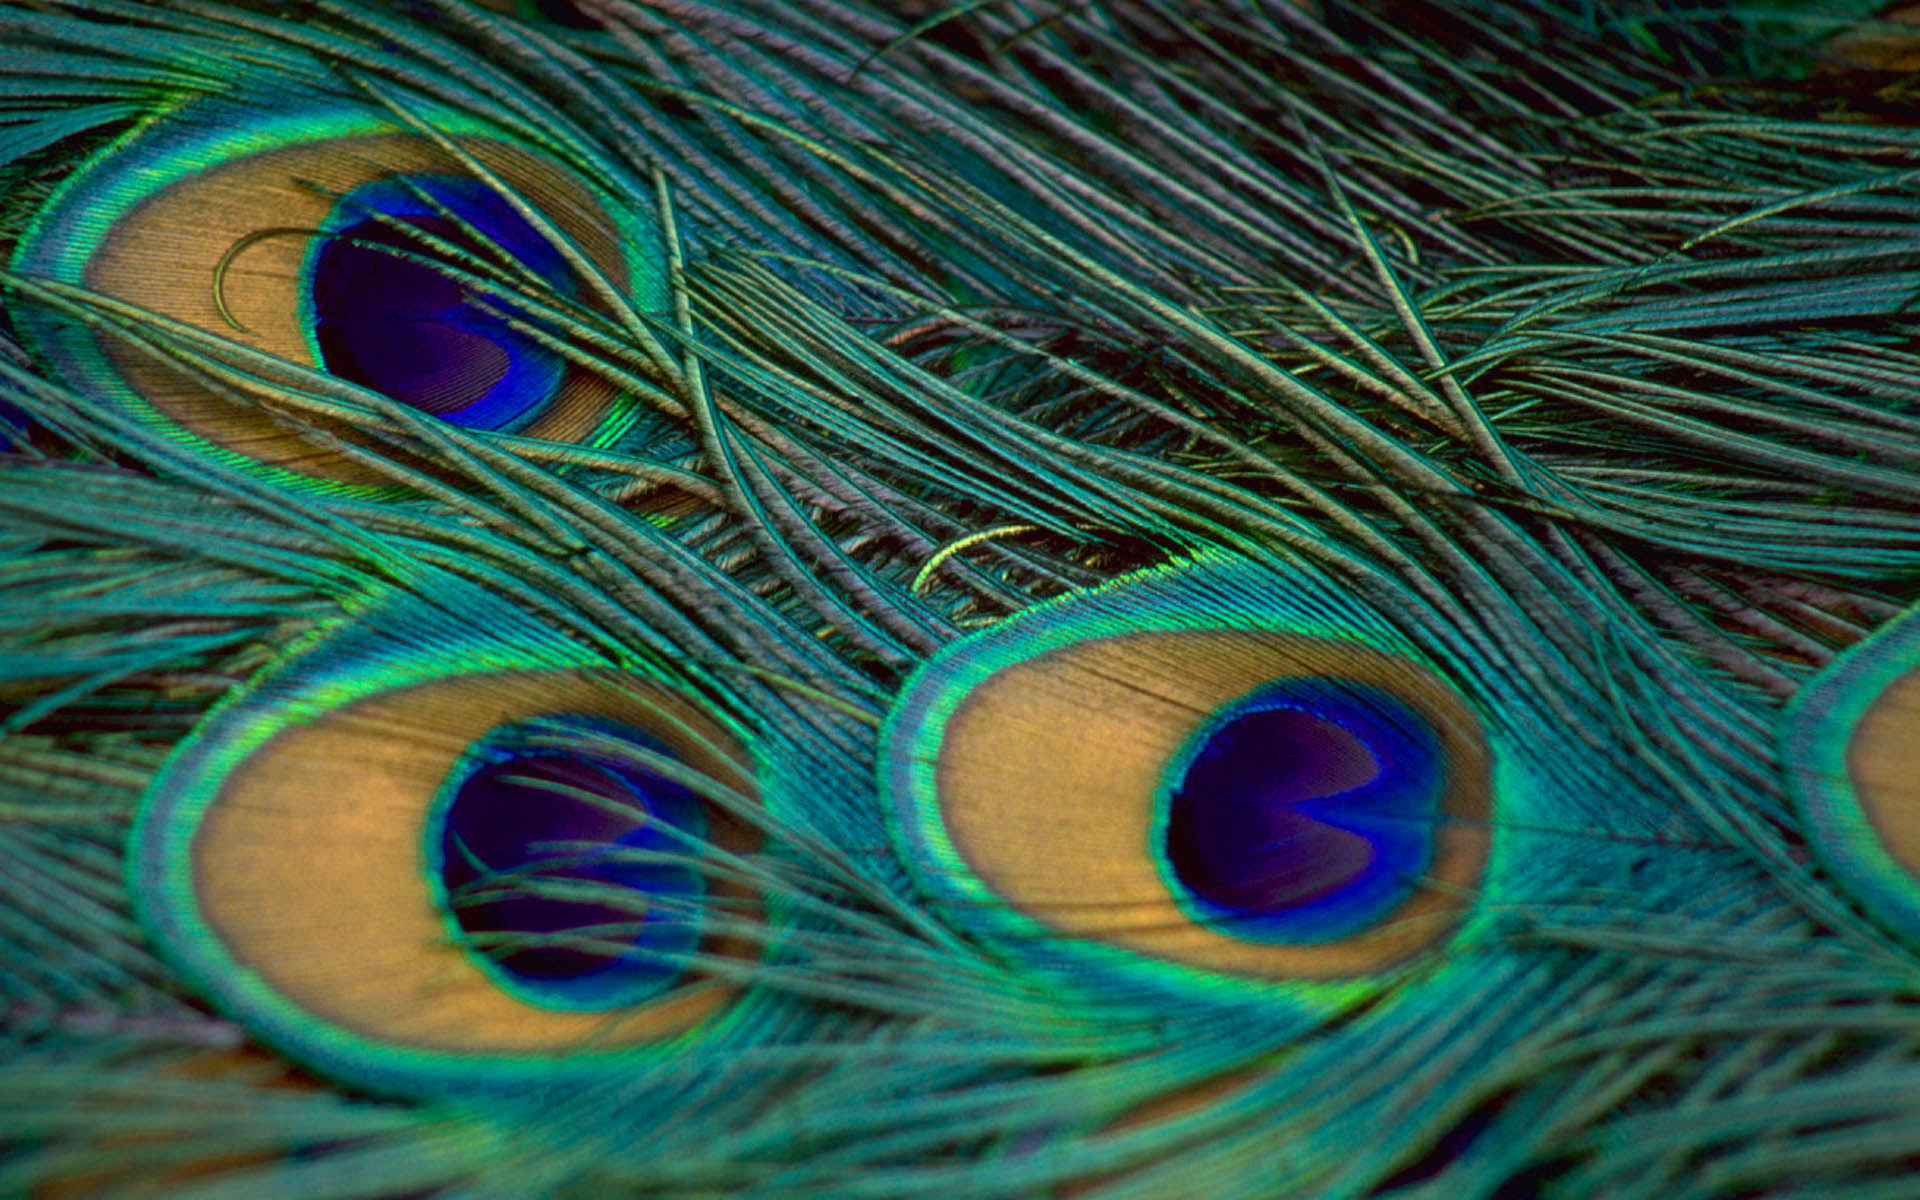 Peacock Feather Wallpaper More HD Wallpapers 1920x1200